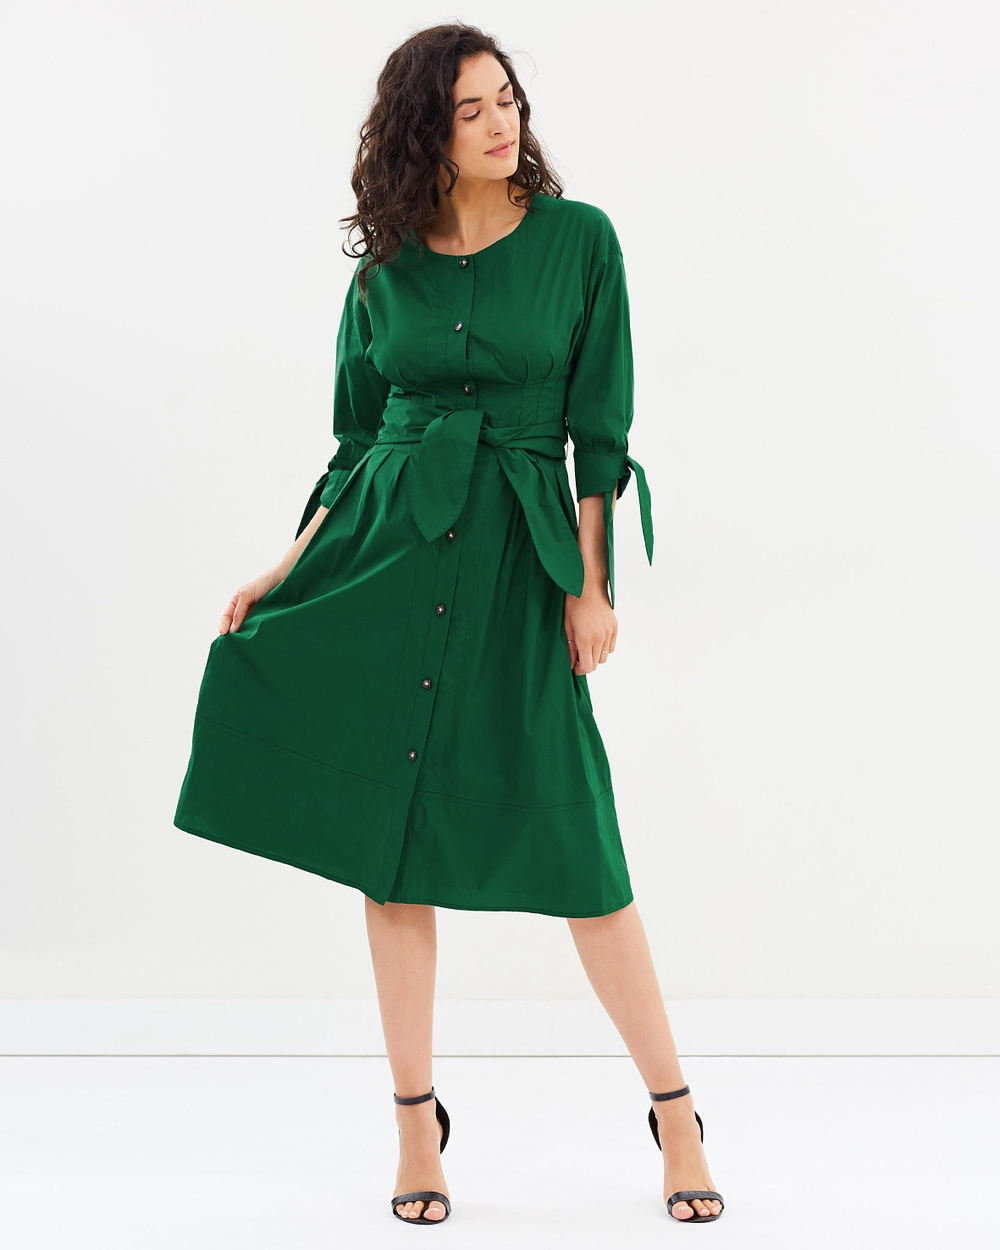 GREY Jason Wu Cotton Long Sleeve Crew Neck Tie Dress Dresses Emerald Cotton Long Sleeve Crew Neck Tie Dress